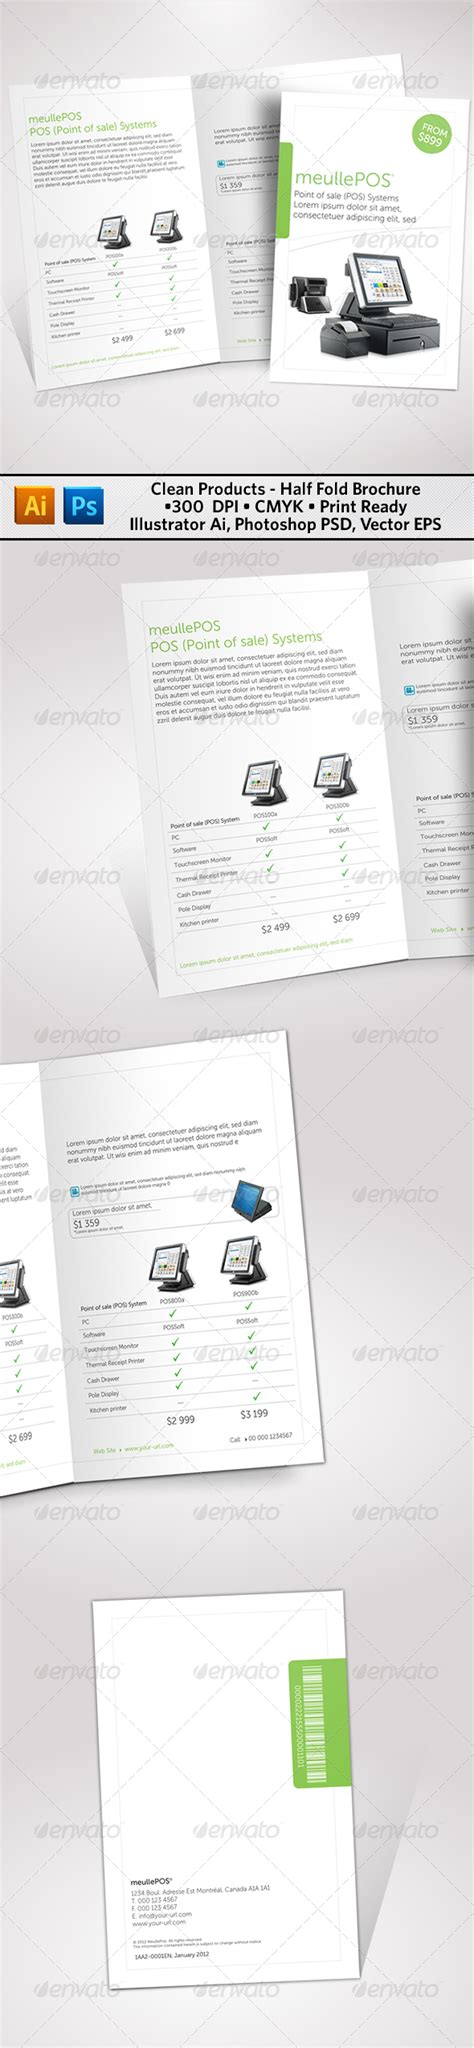 Clean Products Half Fold Brochure Graphicriver Half Fold Brochure Template Powerpoint